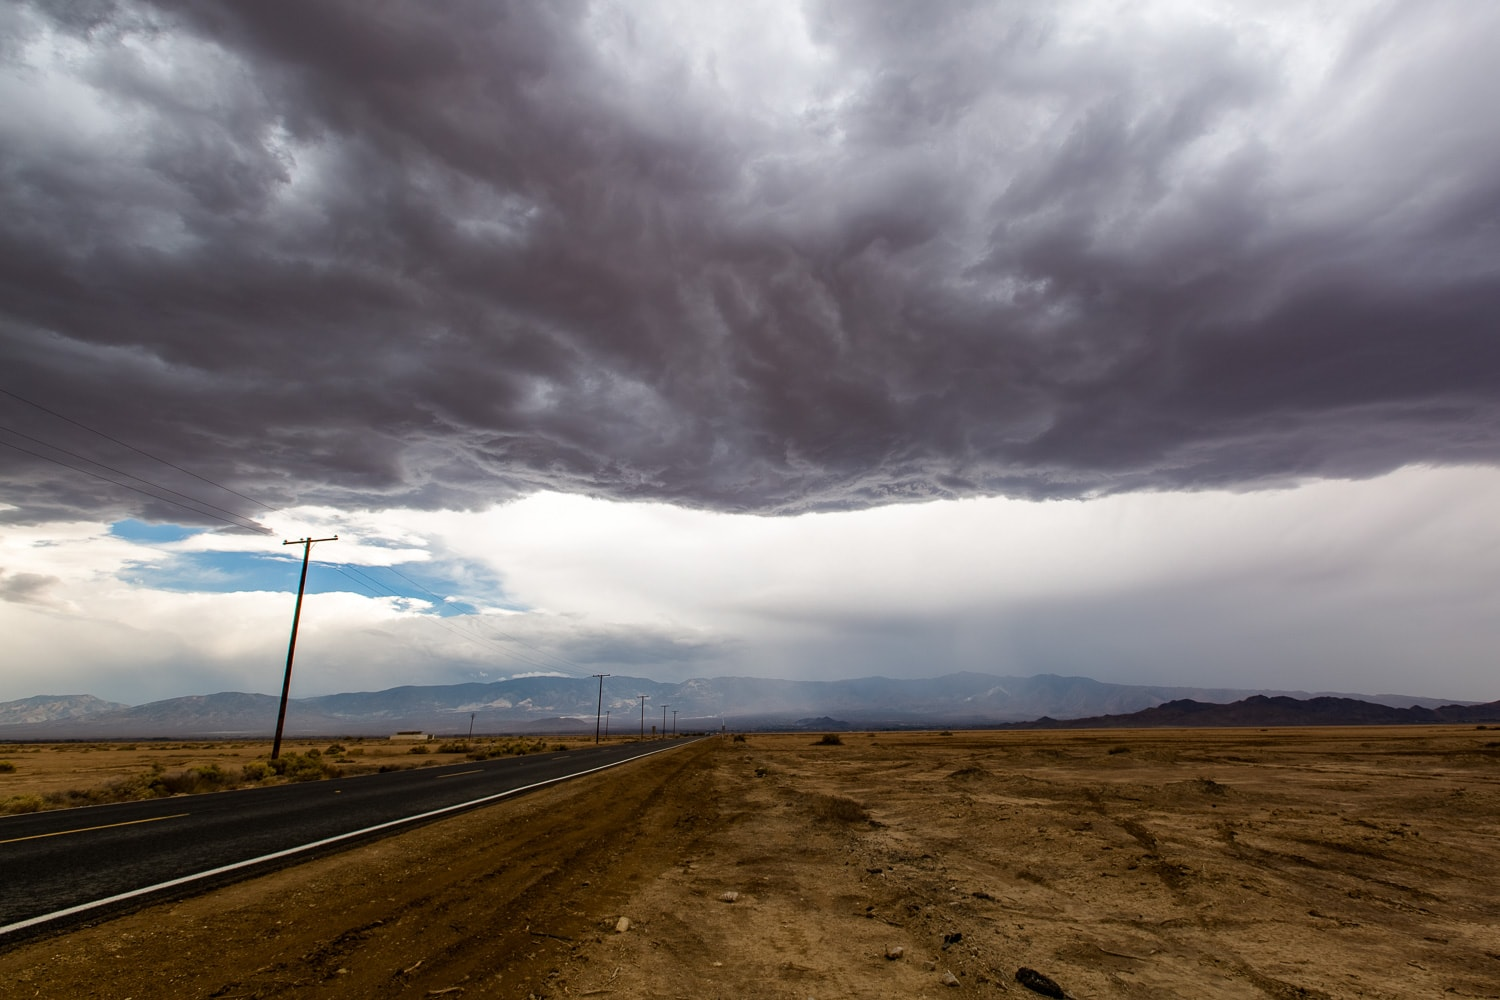 Intense storm clouds seen on the drive back to the San Bernardino mountains